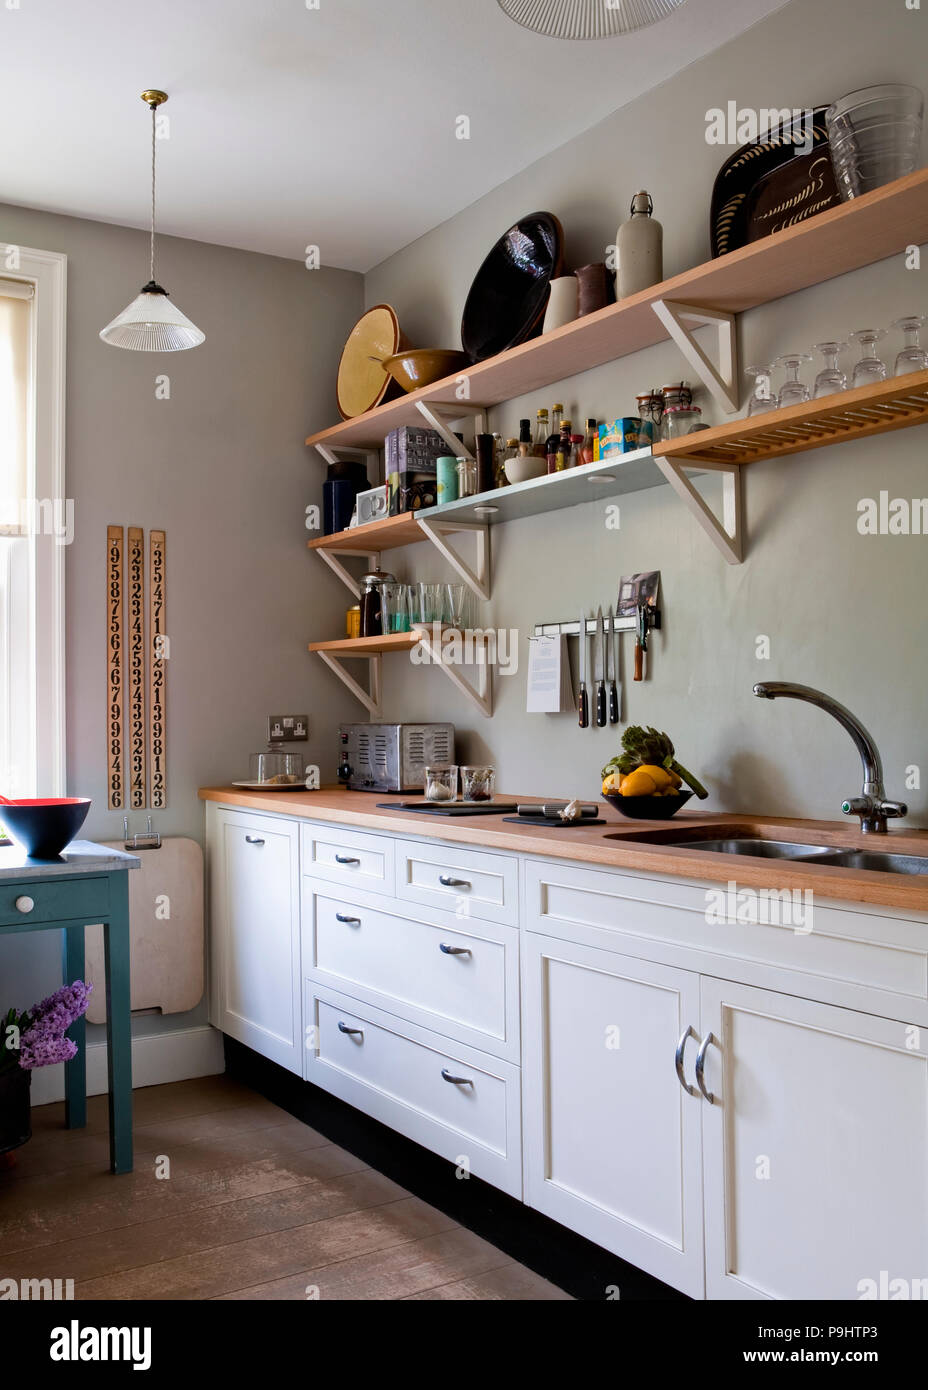 Simple Wooden Shelves Above Fitted White Unit With Sink And Wood